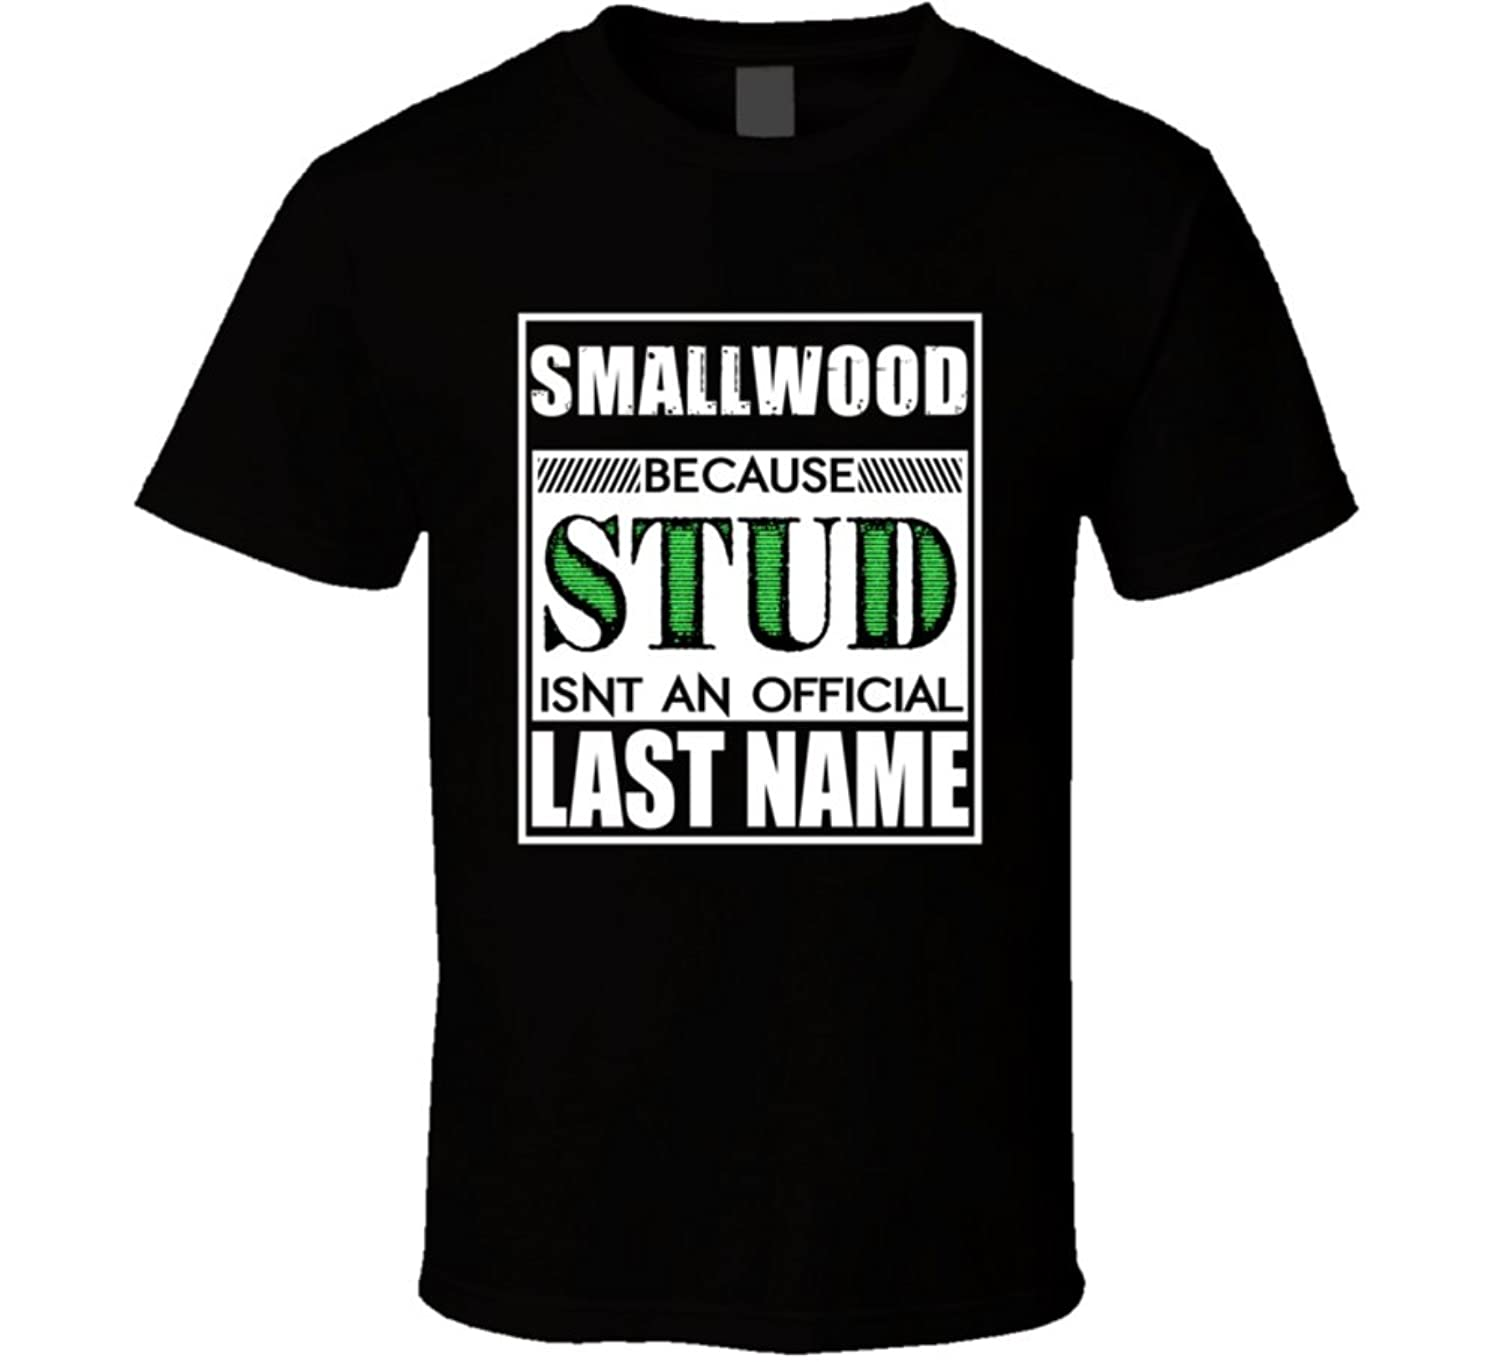 Smallwood Because Stud official Last Name Funny T Shirt